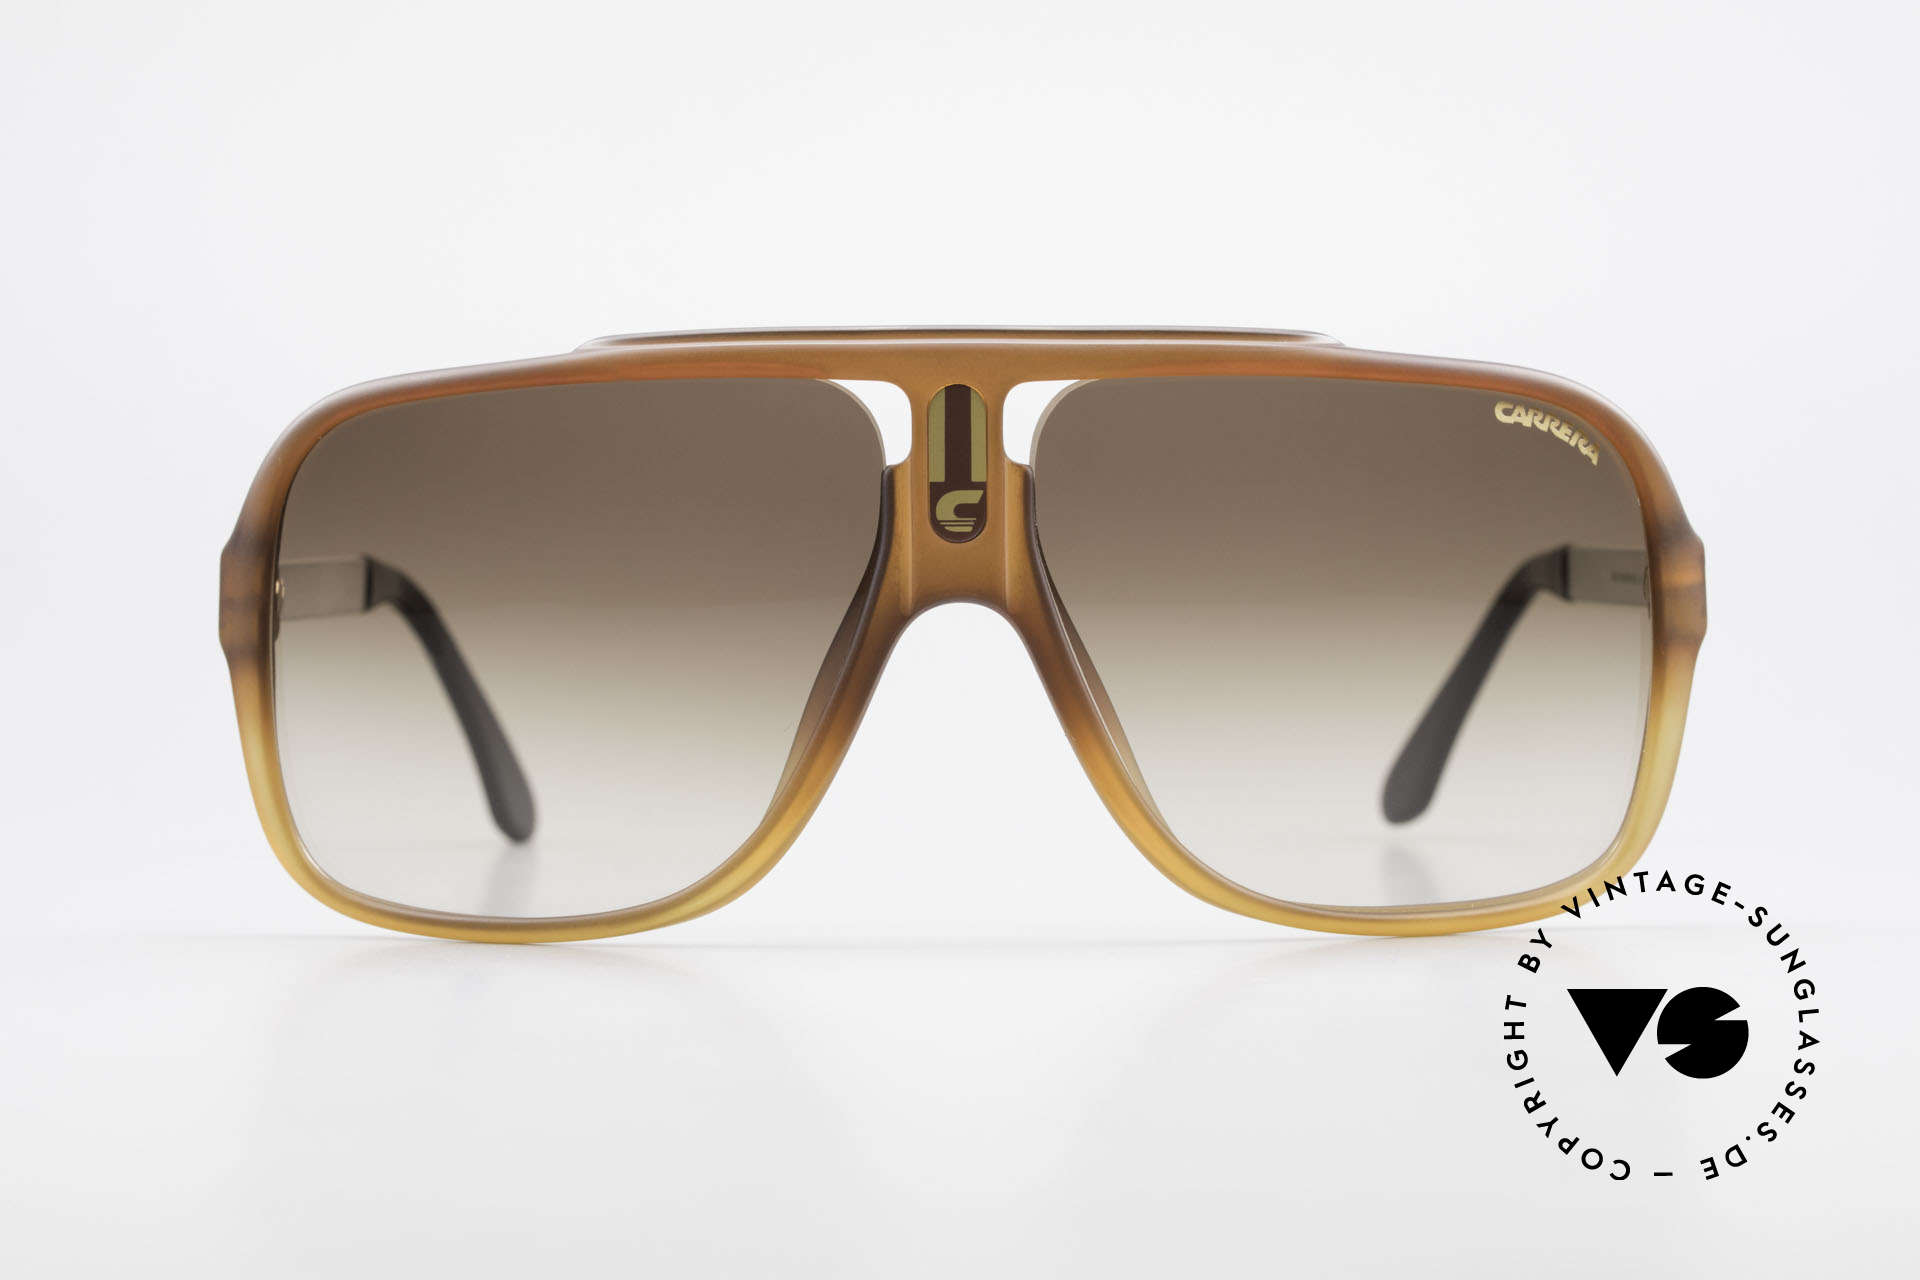 Carrera 5557 Rare Vintage Shades No Retro, very sturdy frame by famous Optyl (1st class quality), Made for Men